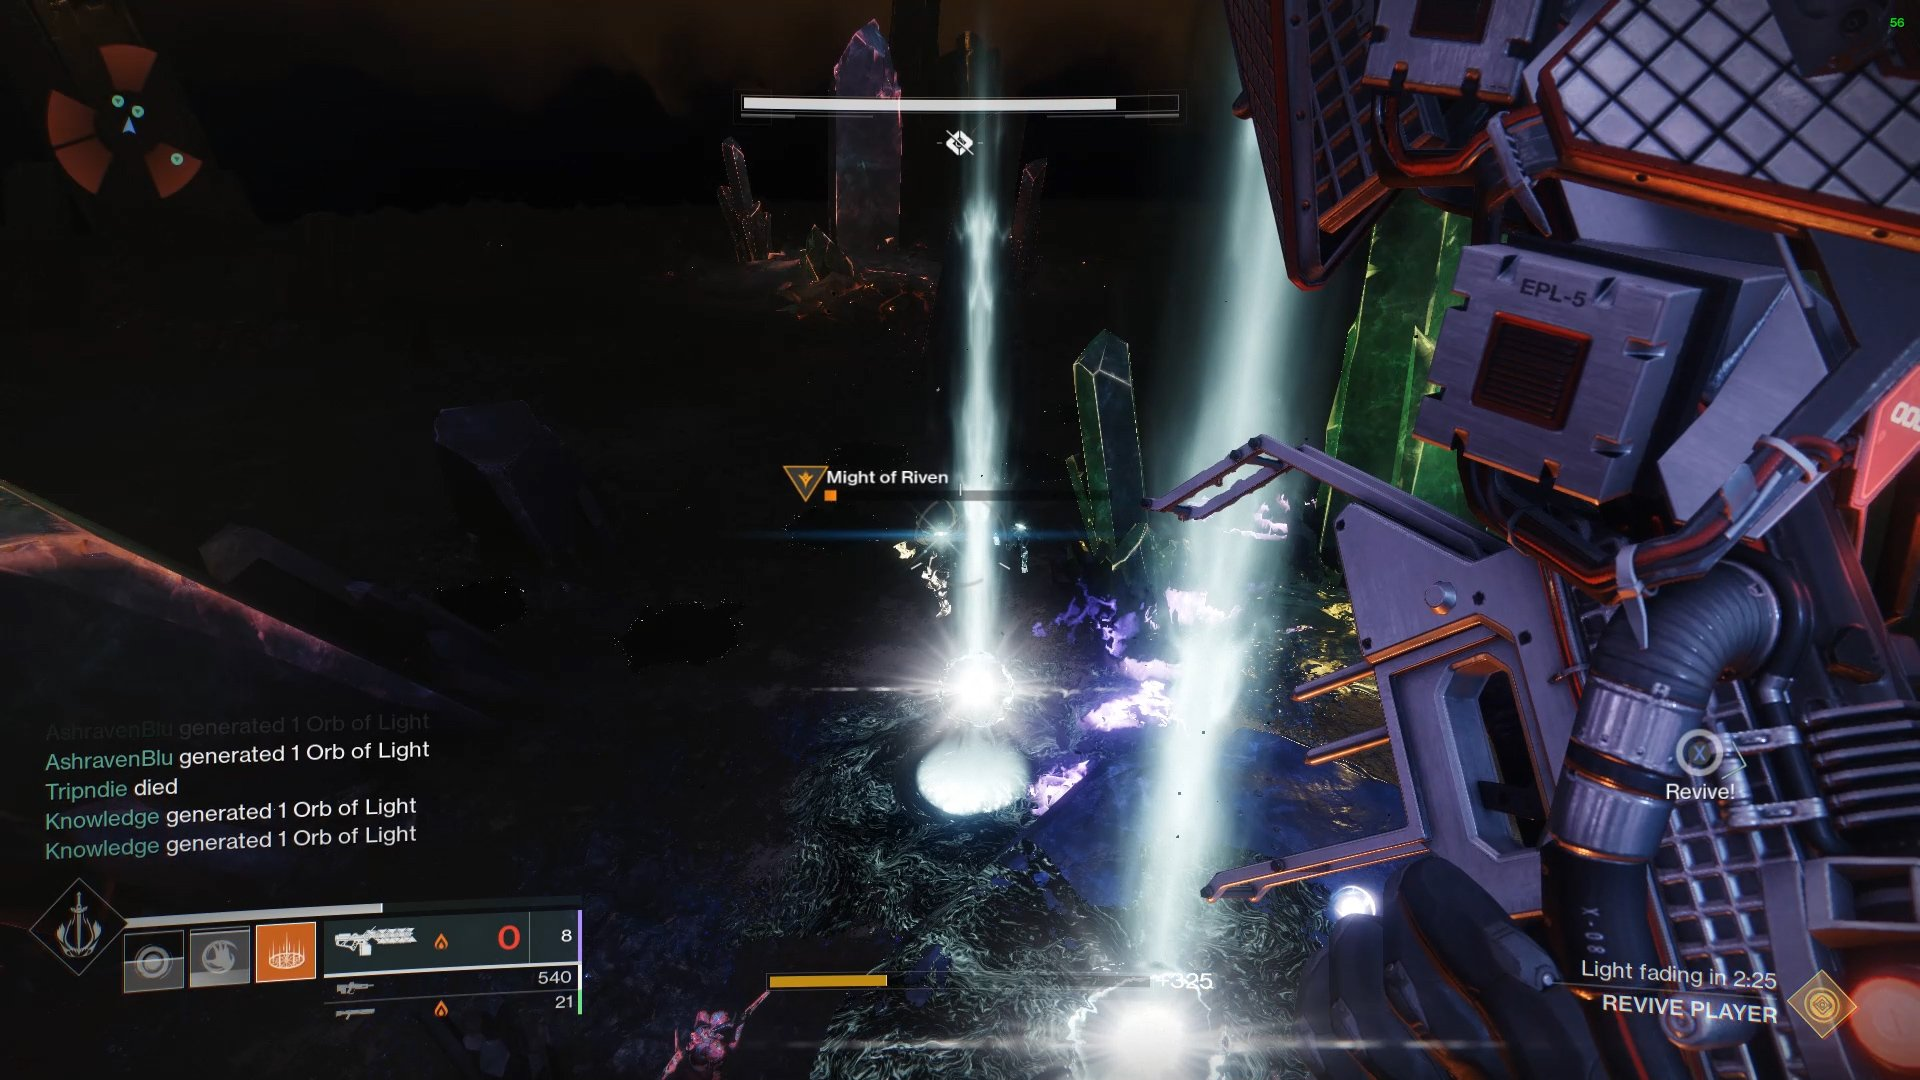 Players my synchronise the collection of the beams of light to extend the timer for the player carrying Riven's heart.